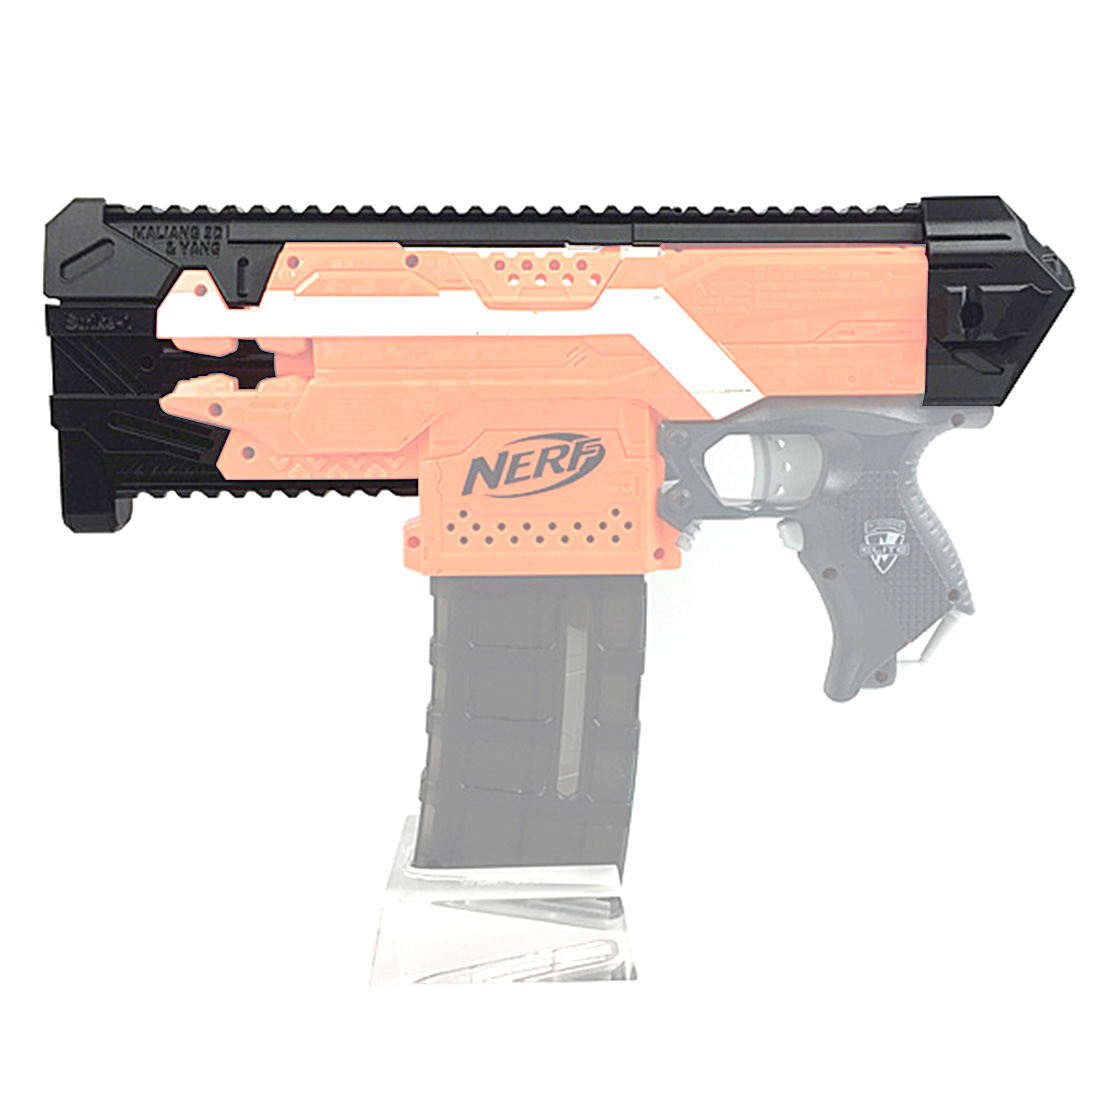 Maliang 3D Printing Science Fiction Style S1 Appearance Modified Kit for Nerf Stryfe - Black maliang appearance modification 3d printing front tube a 3 0 decoration part for nerf zombie strike doublestrike blaster